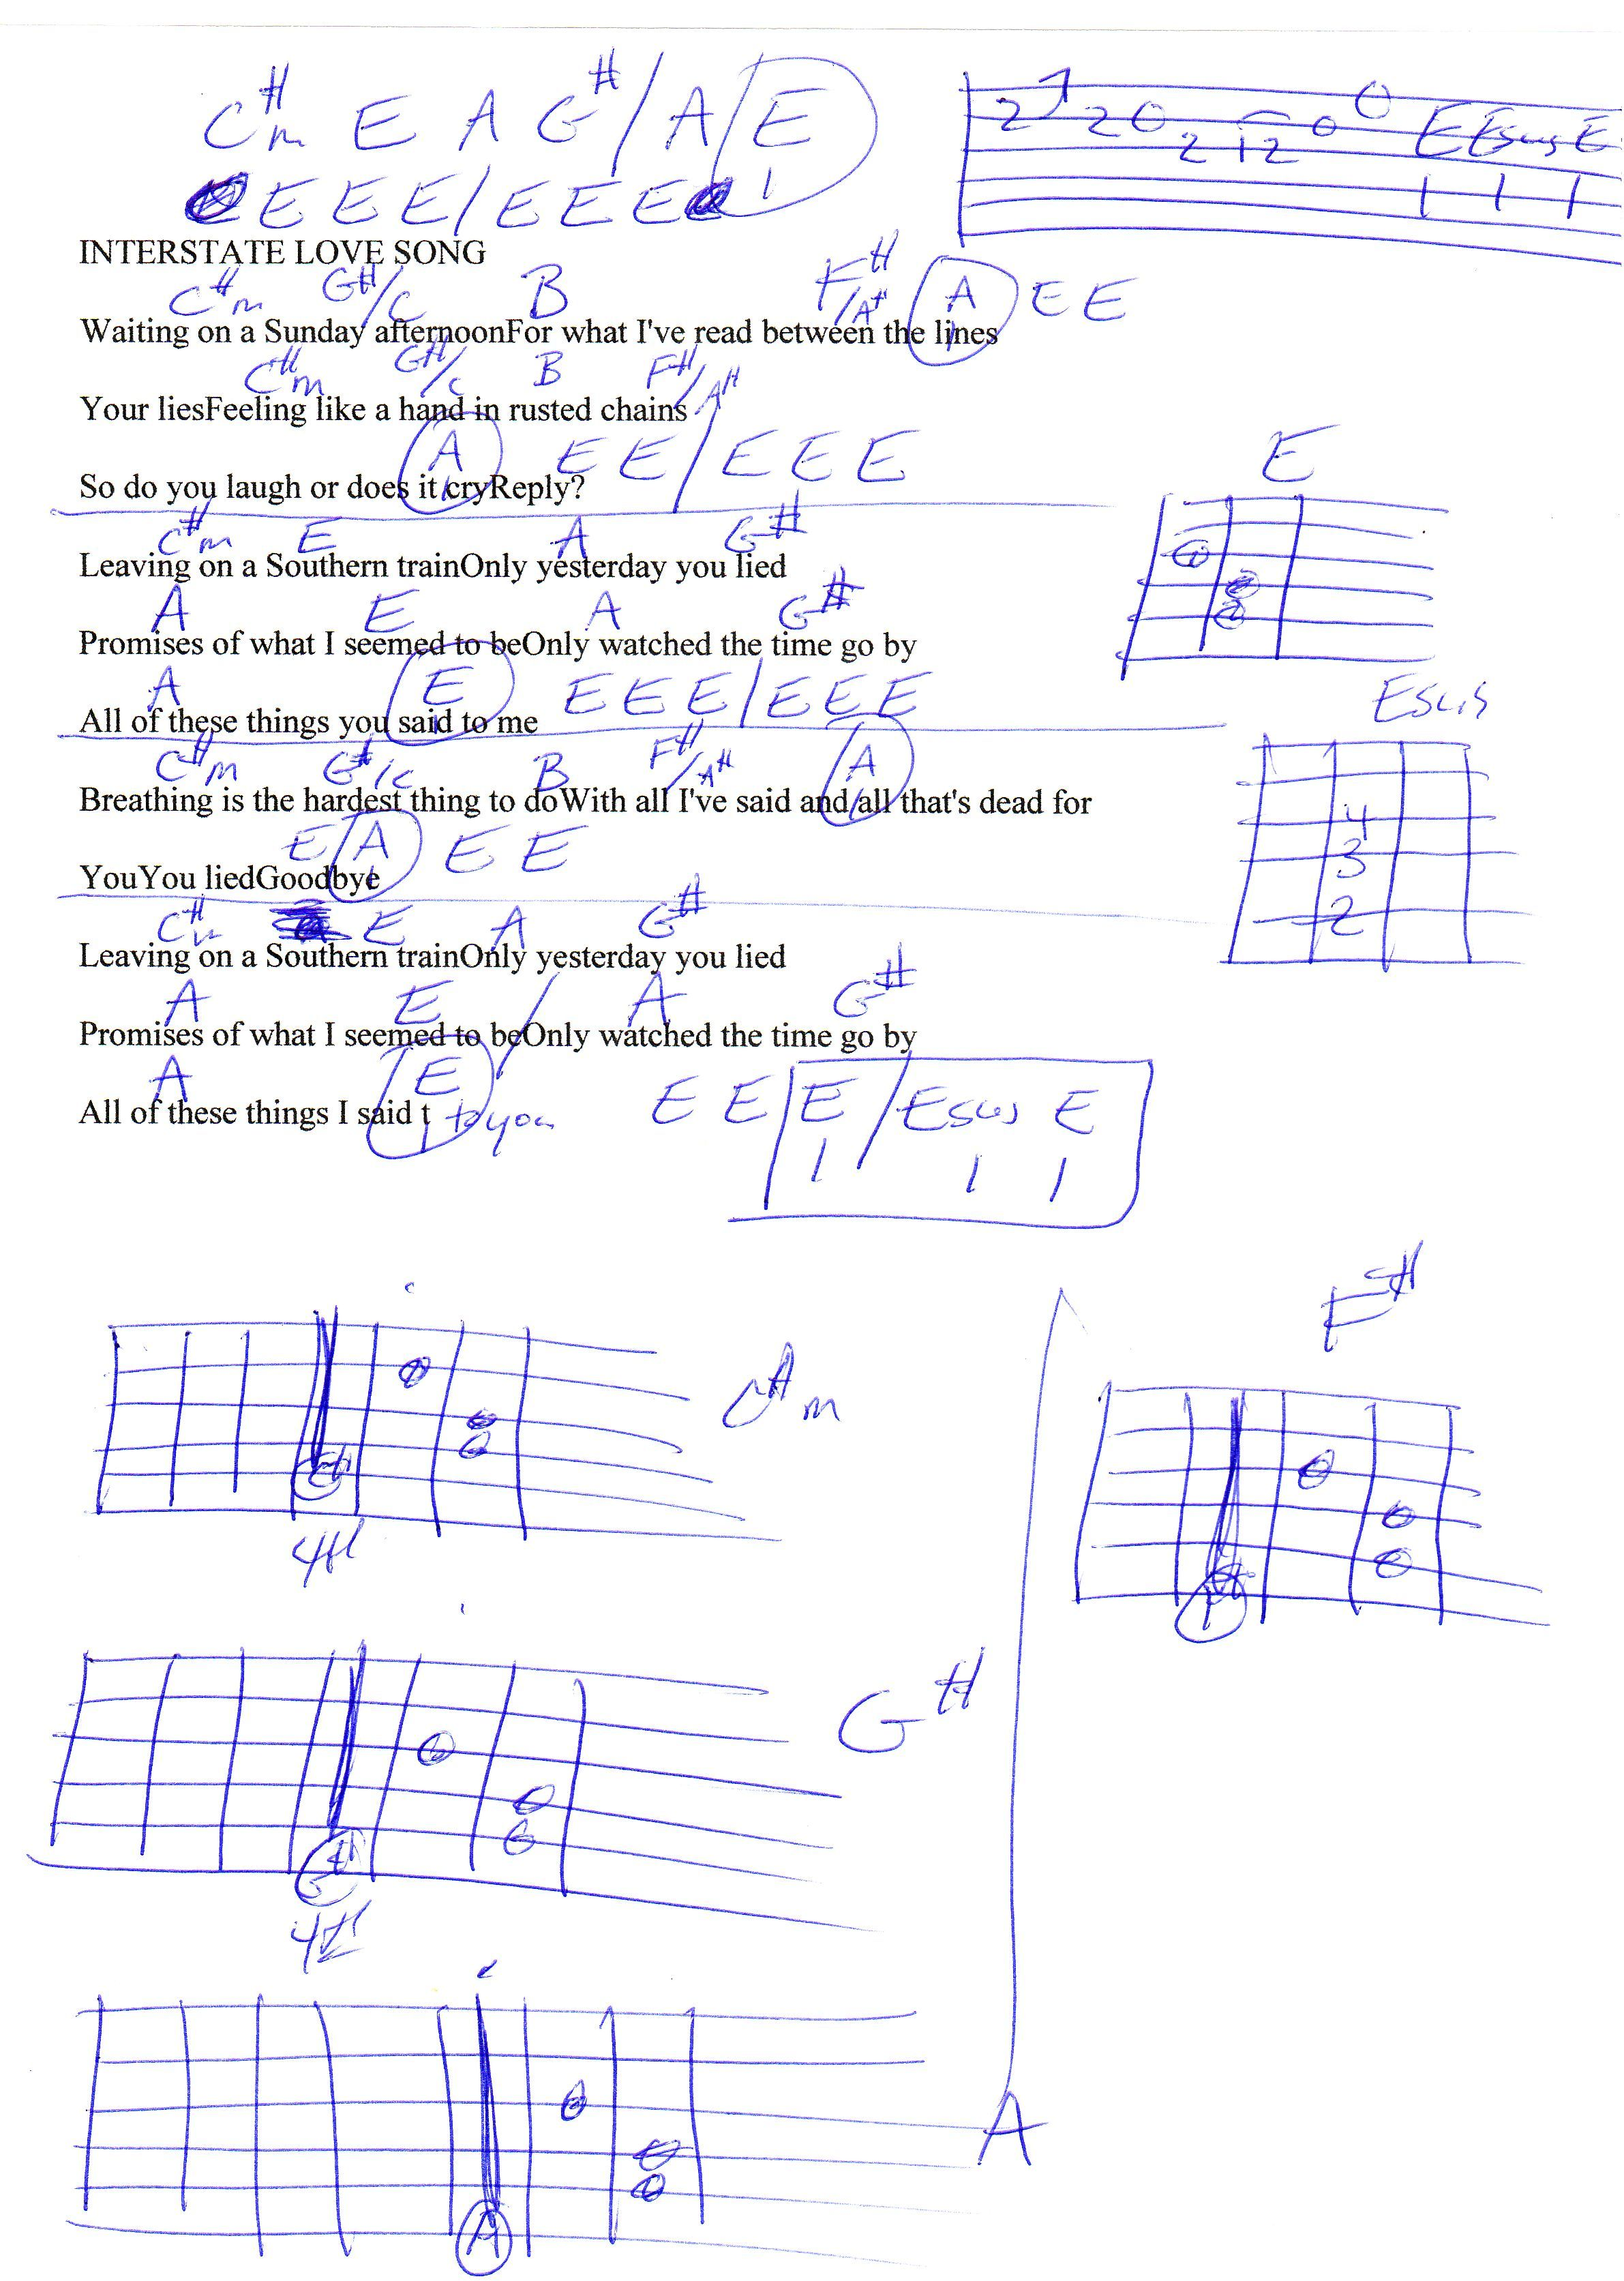 Interstate Love Song Stone Temple Pilots Guitar Chord Chart